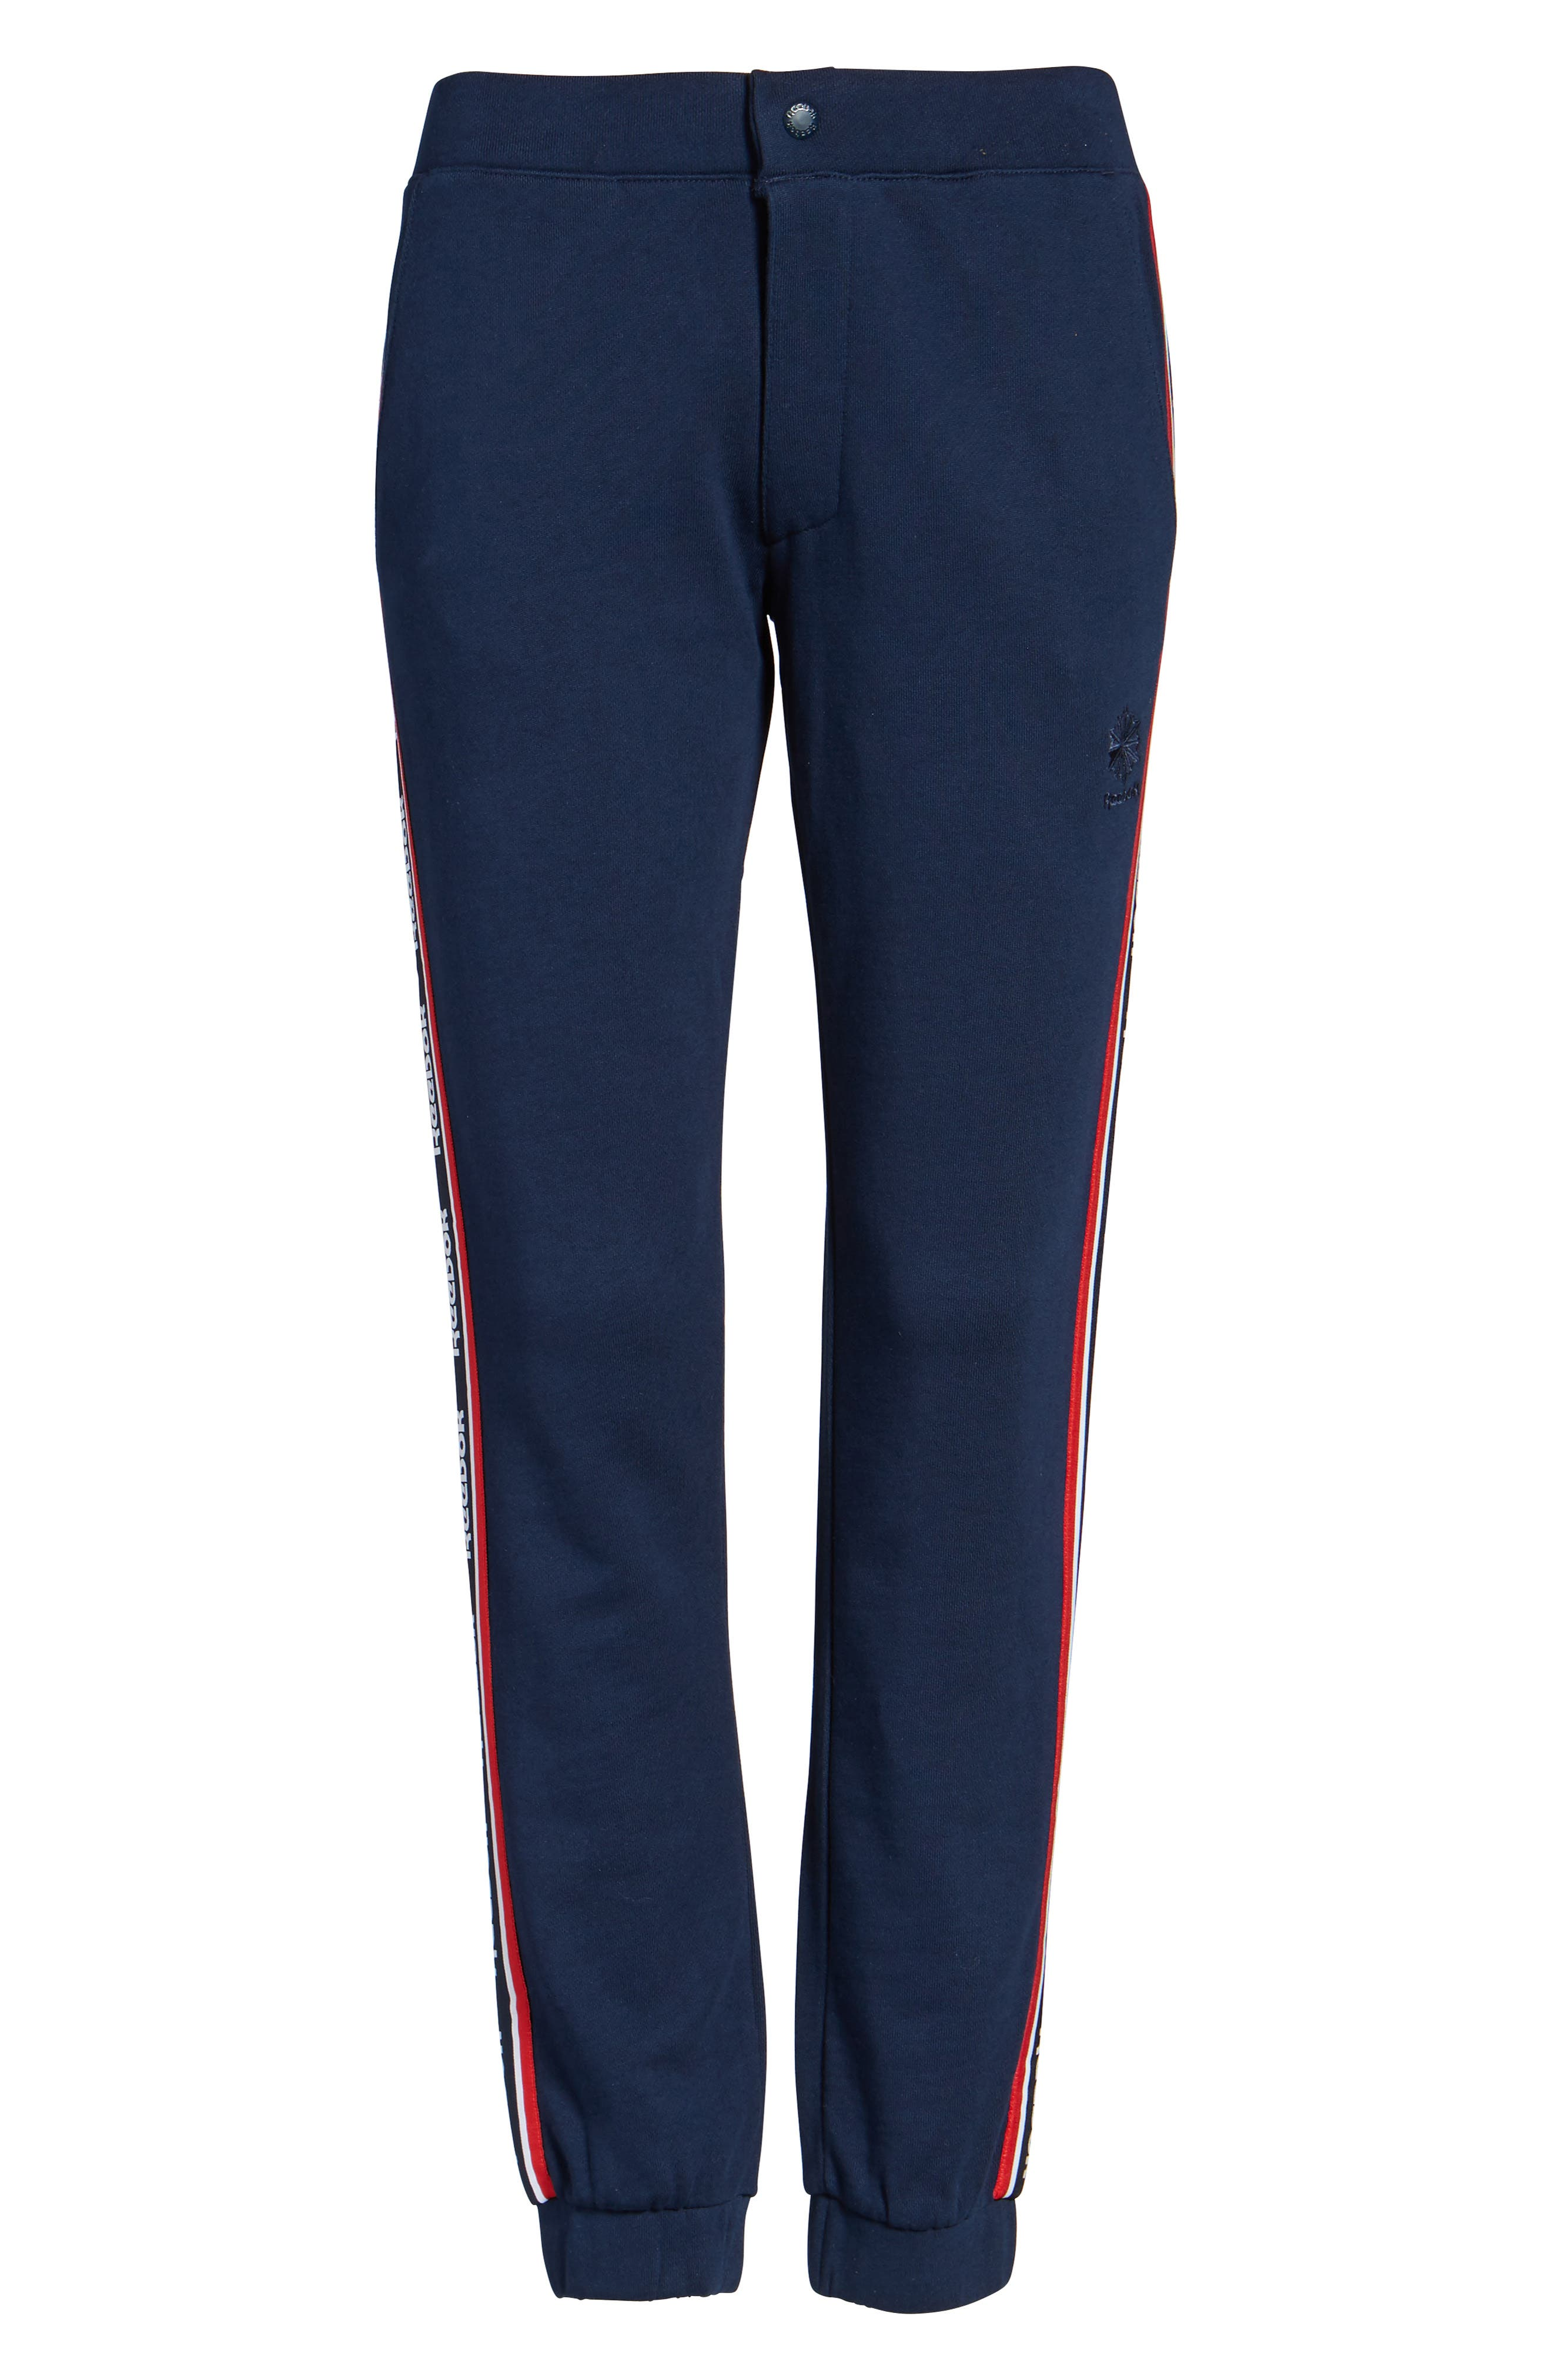 French Terry Pants,                             Alternate thumbnail 12, color,